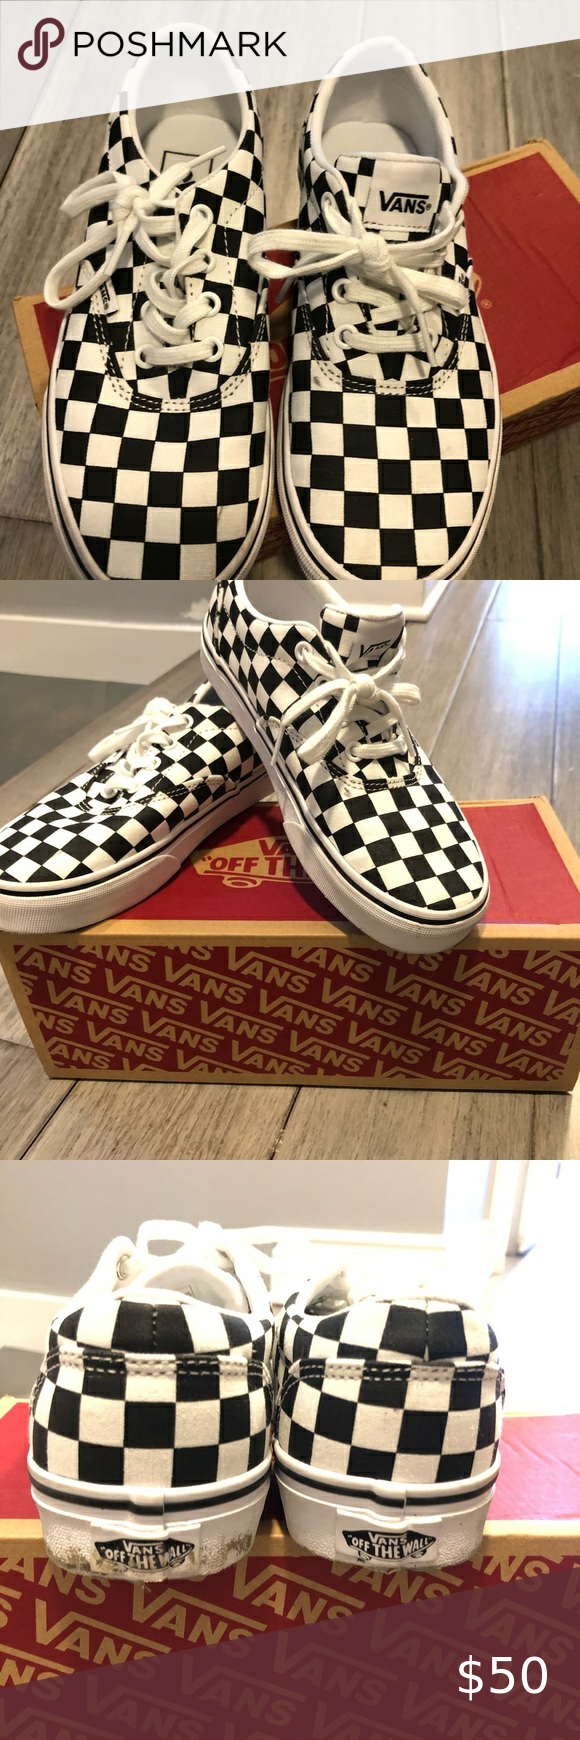 Checkerboard Vans Shoes size 6.5 in